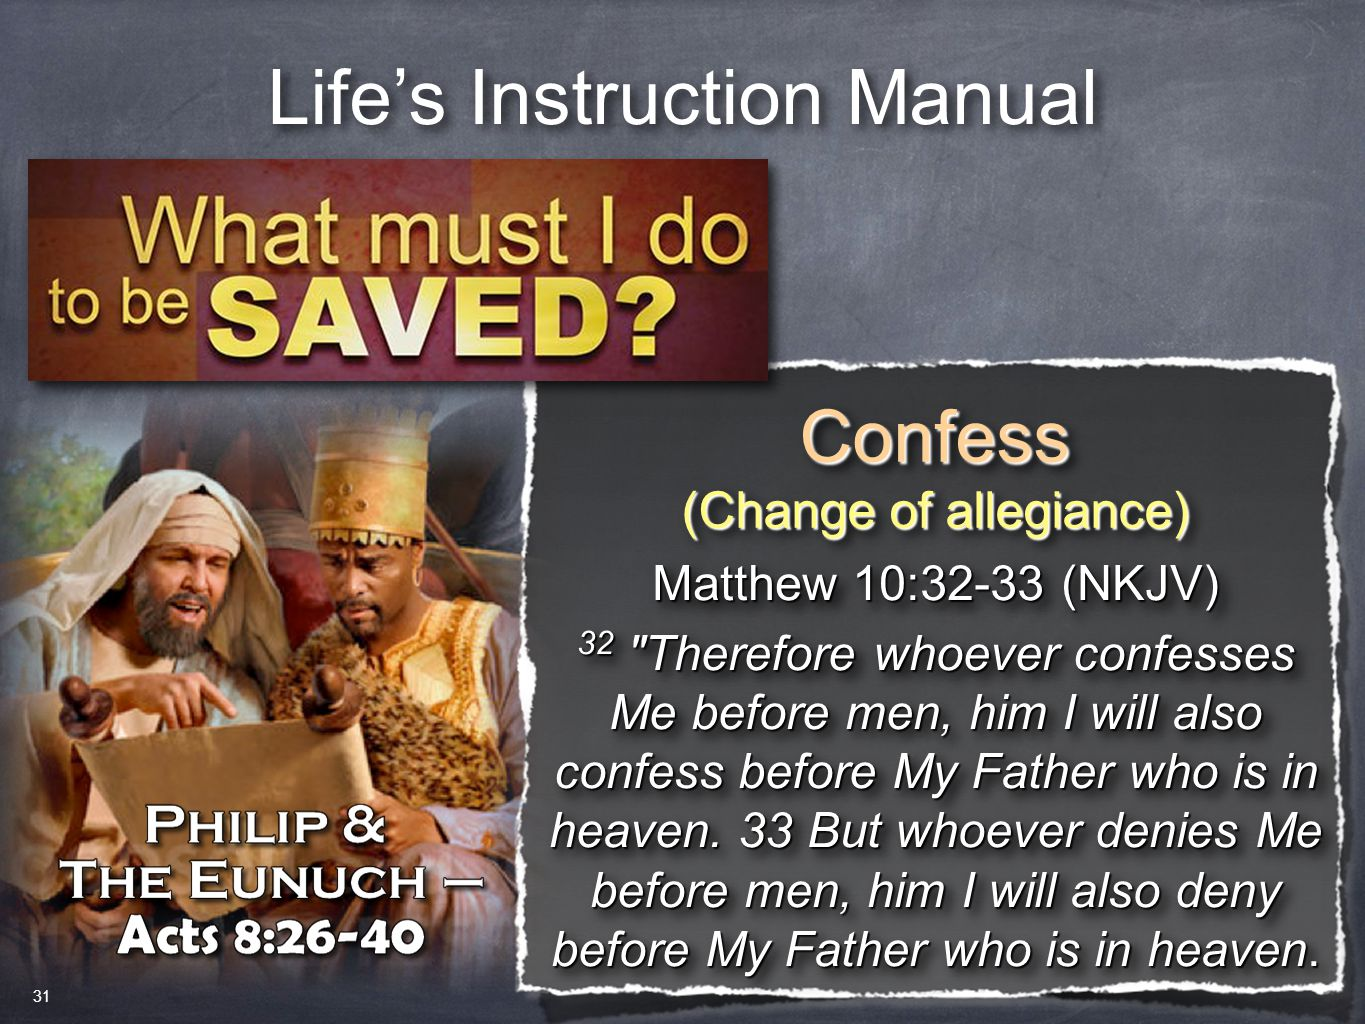 Life's Instruction Manual Confess (Change of allegiance) Confess Matthew 10:32-33 (NKJV) 32 Therefore whoever confesses Me before men, him I will also confess before My Father who is in heaven.